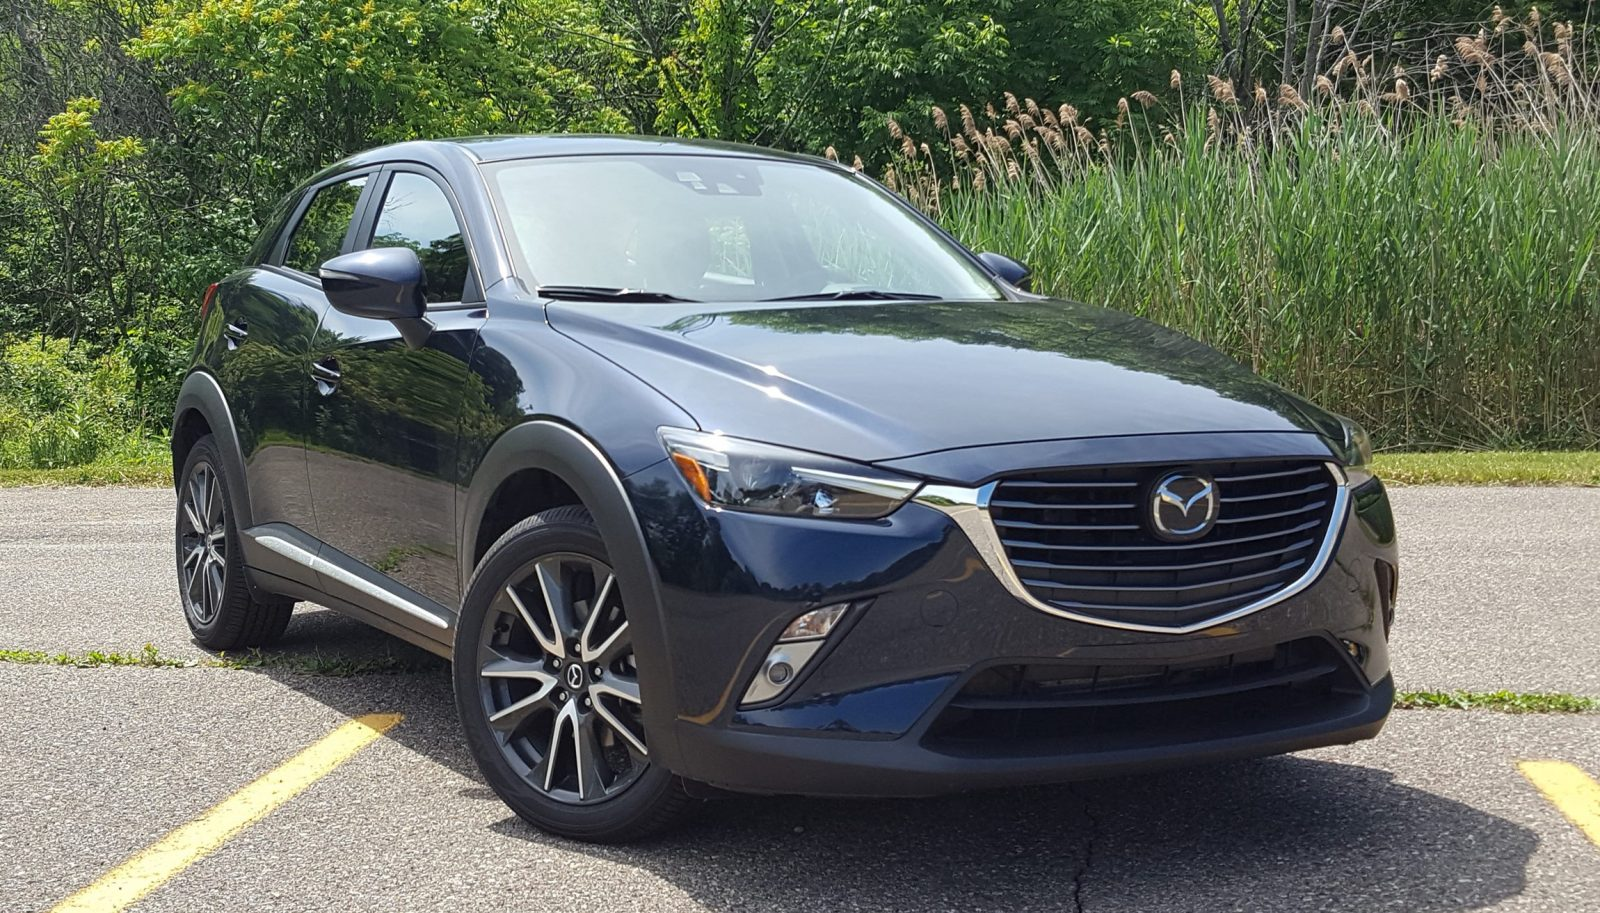 road test review 2016 mazda cx 3 grand touring by carl malek car revs. Black Bedroom Furniture Sets. Home Design Ideas